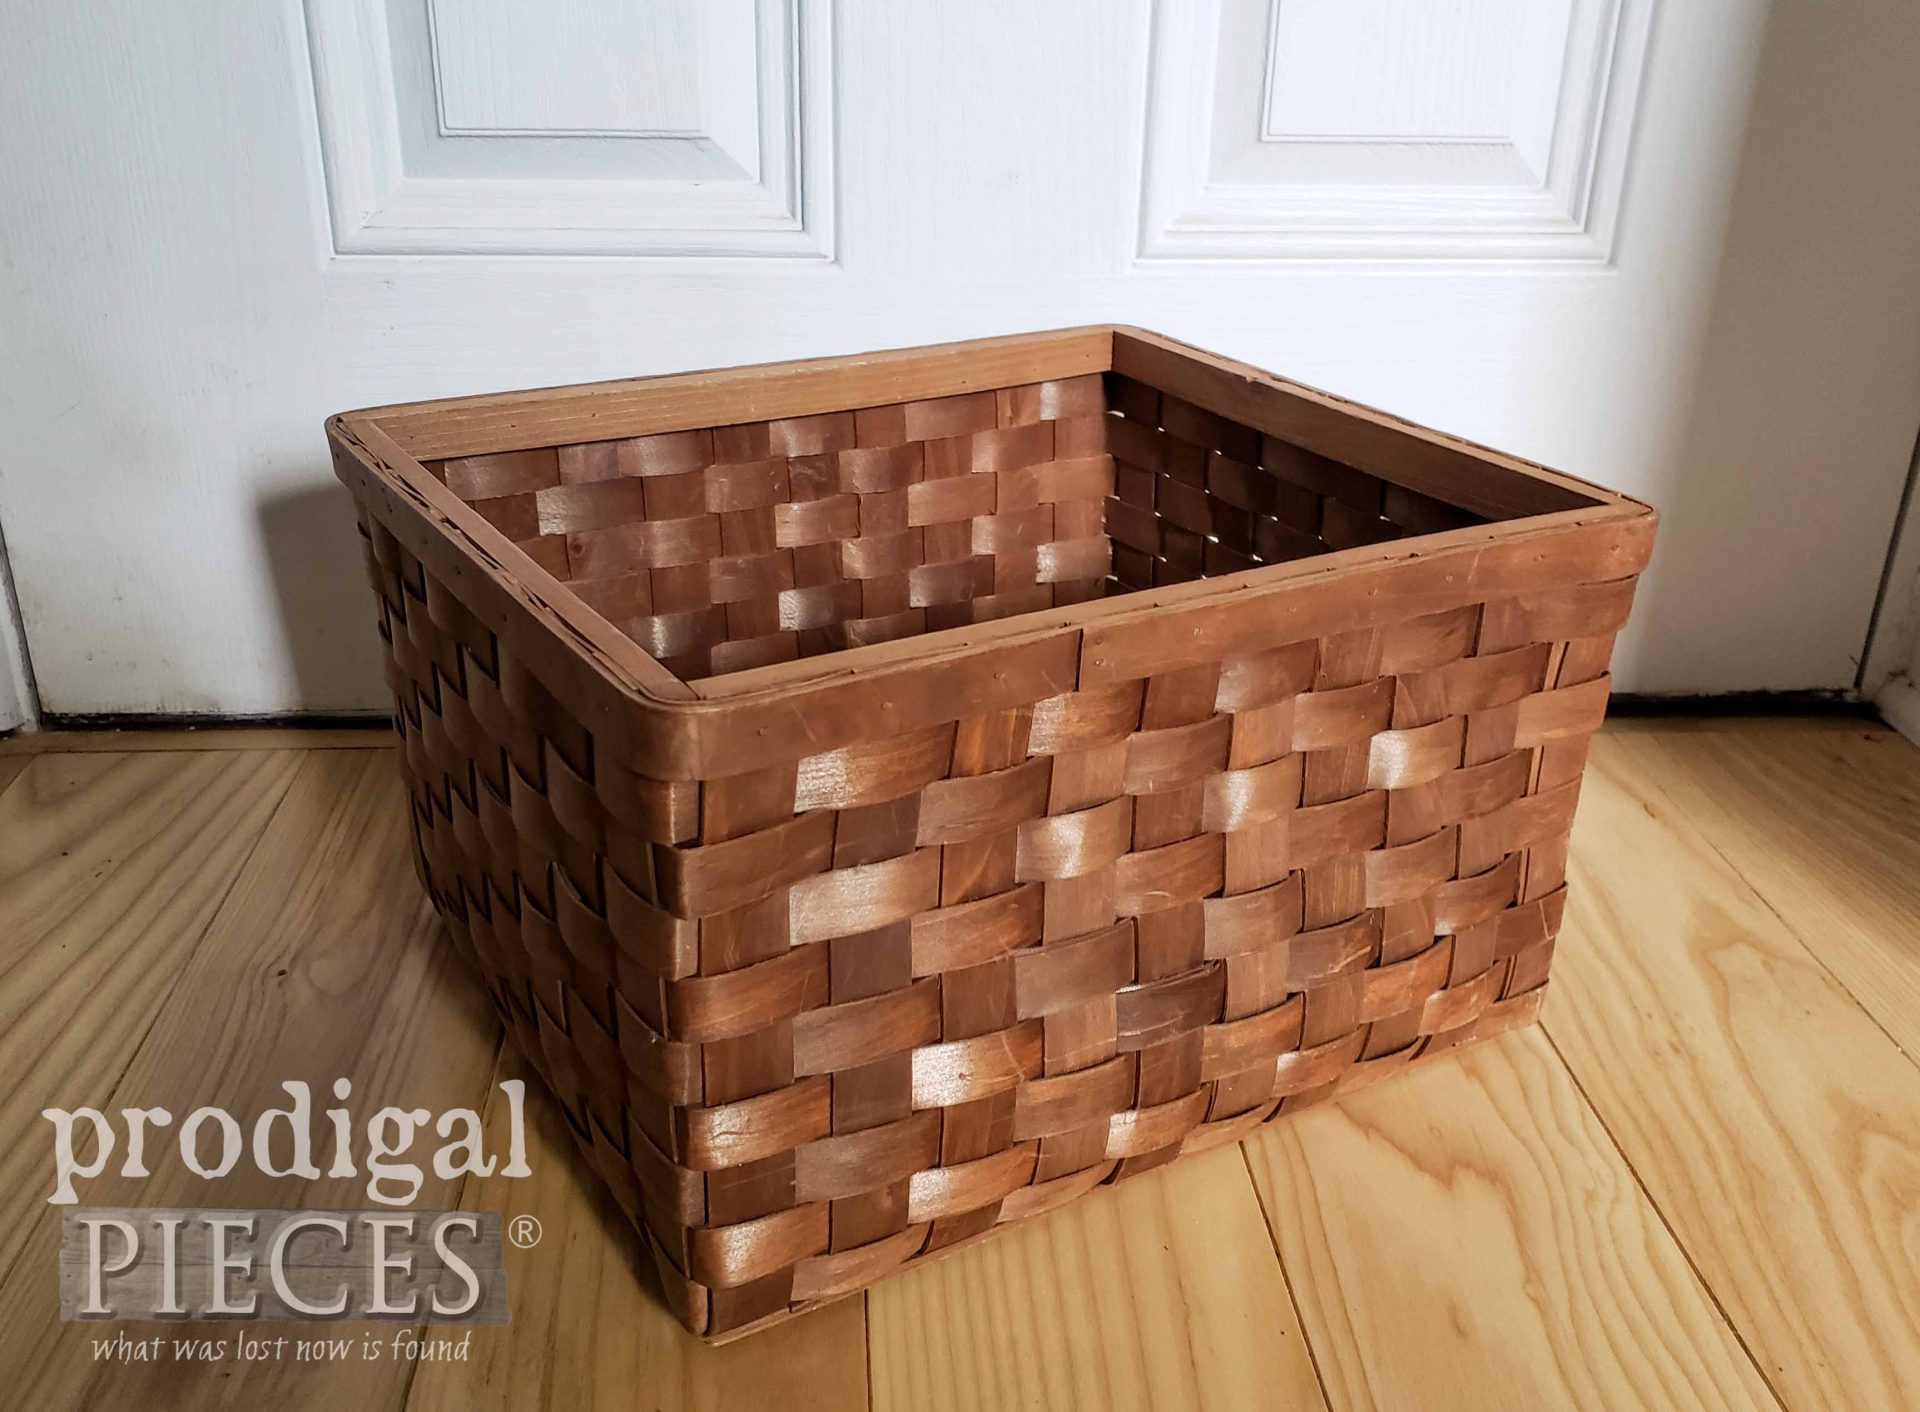 Thrifted Basket Before Upcycle by Larissa of Prodigal Pieces | prodigalpieces.com